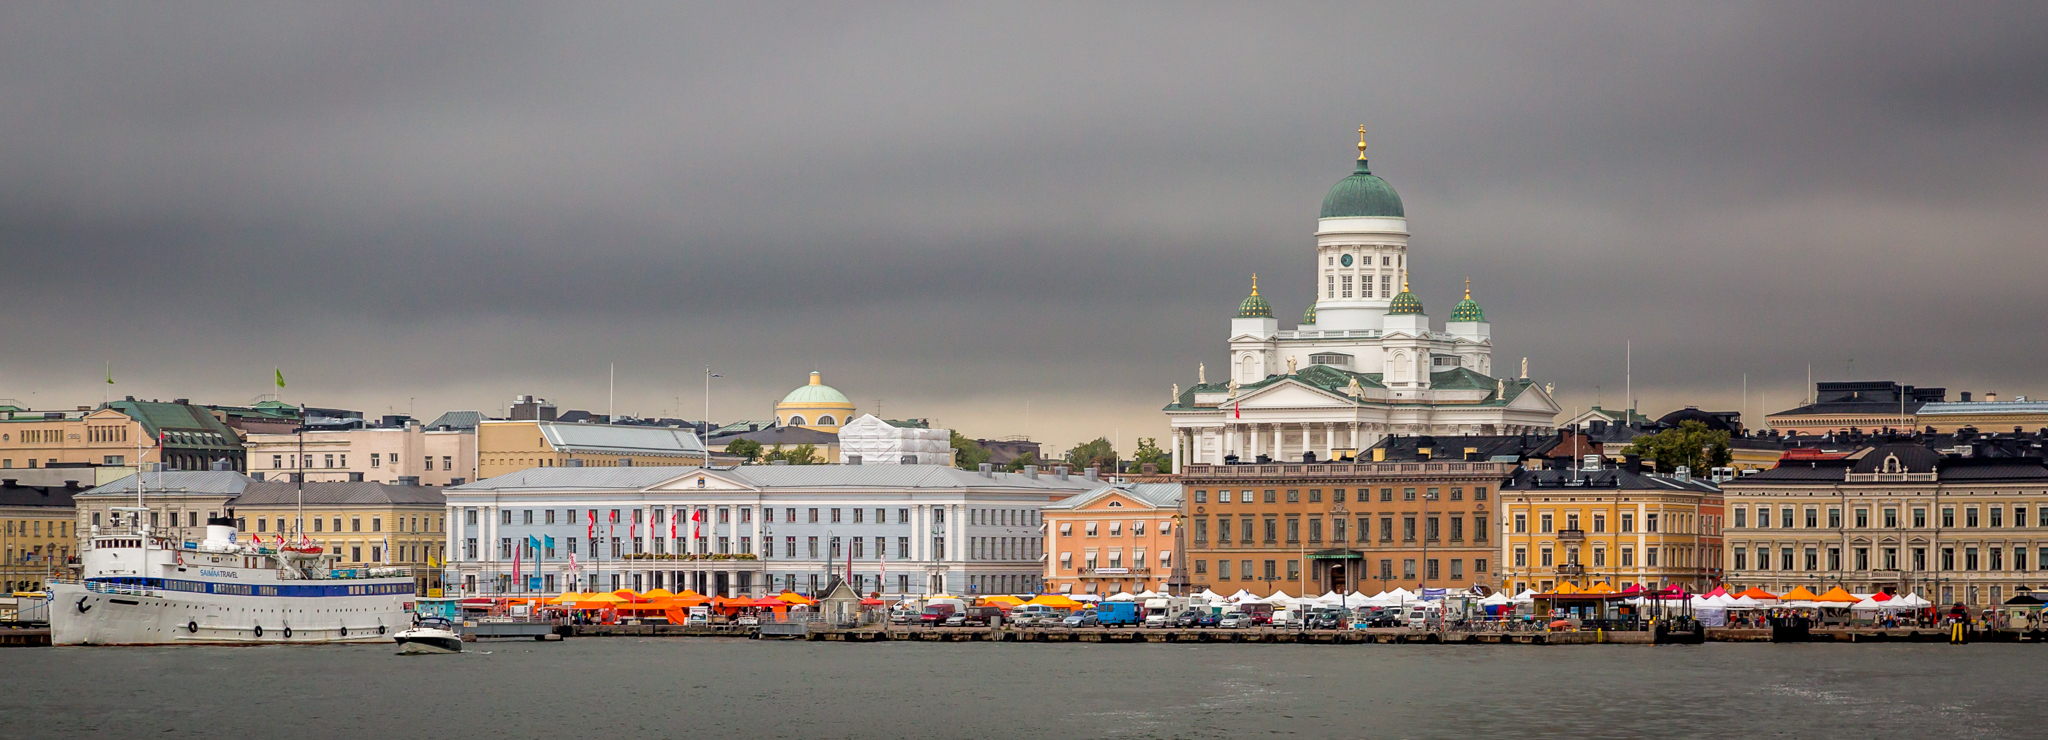 Helsinki is the capital of Finland and home to 1.2 million residents. The cathedral looming in the background is Helsinki Cathedral, originally built in 1852 and was known as St Nicholas' Church until Finnish independence in 1917.